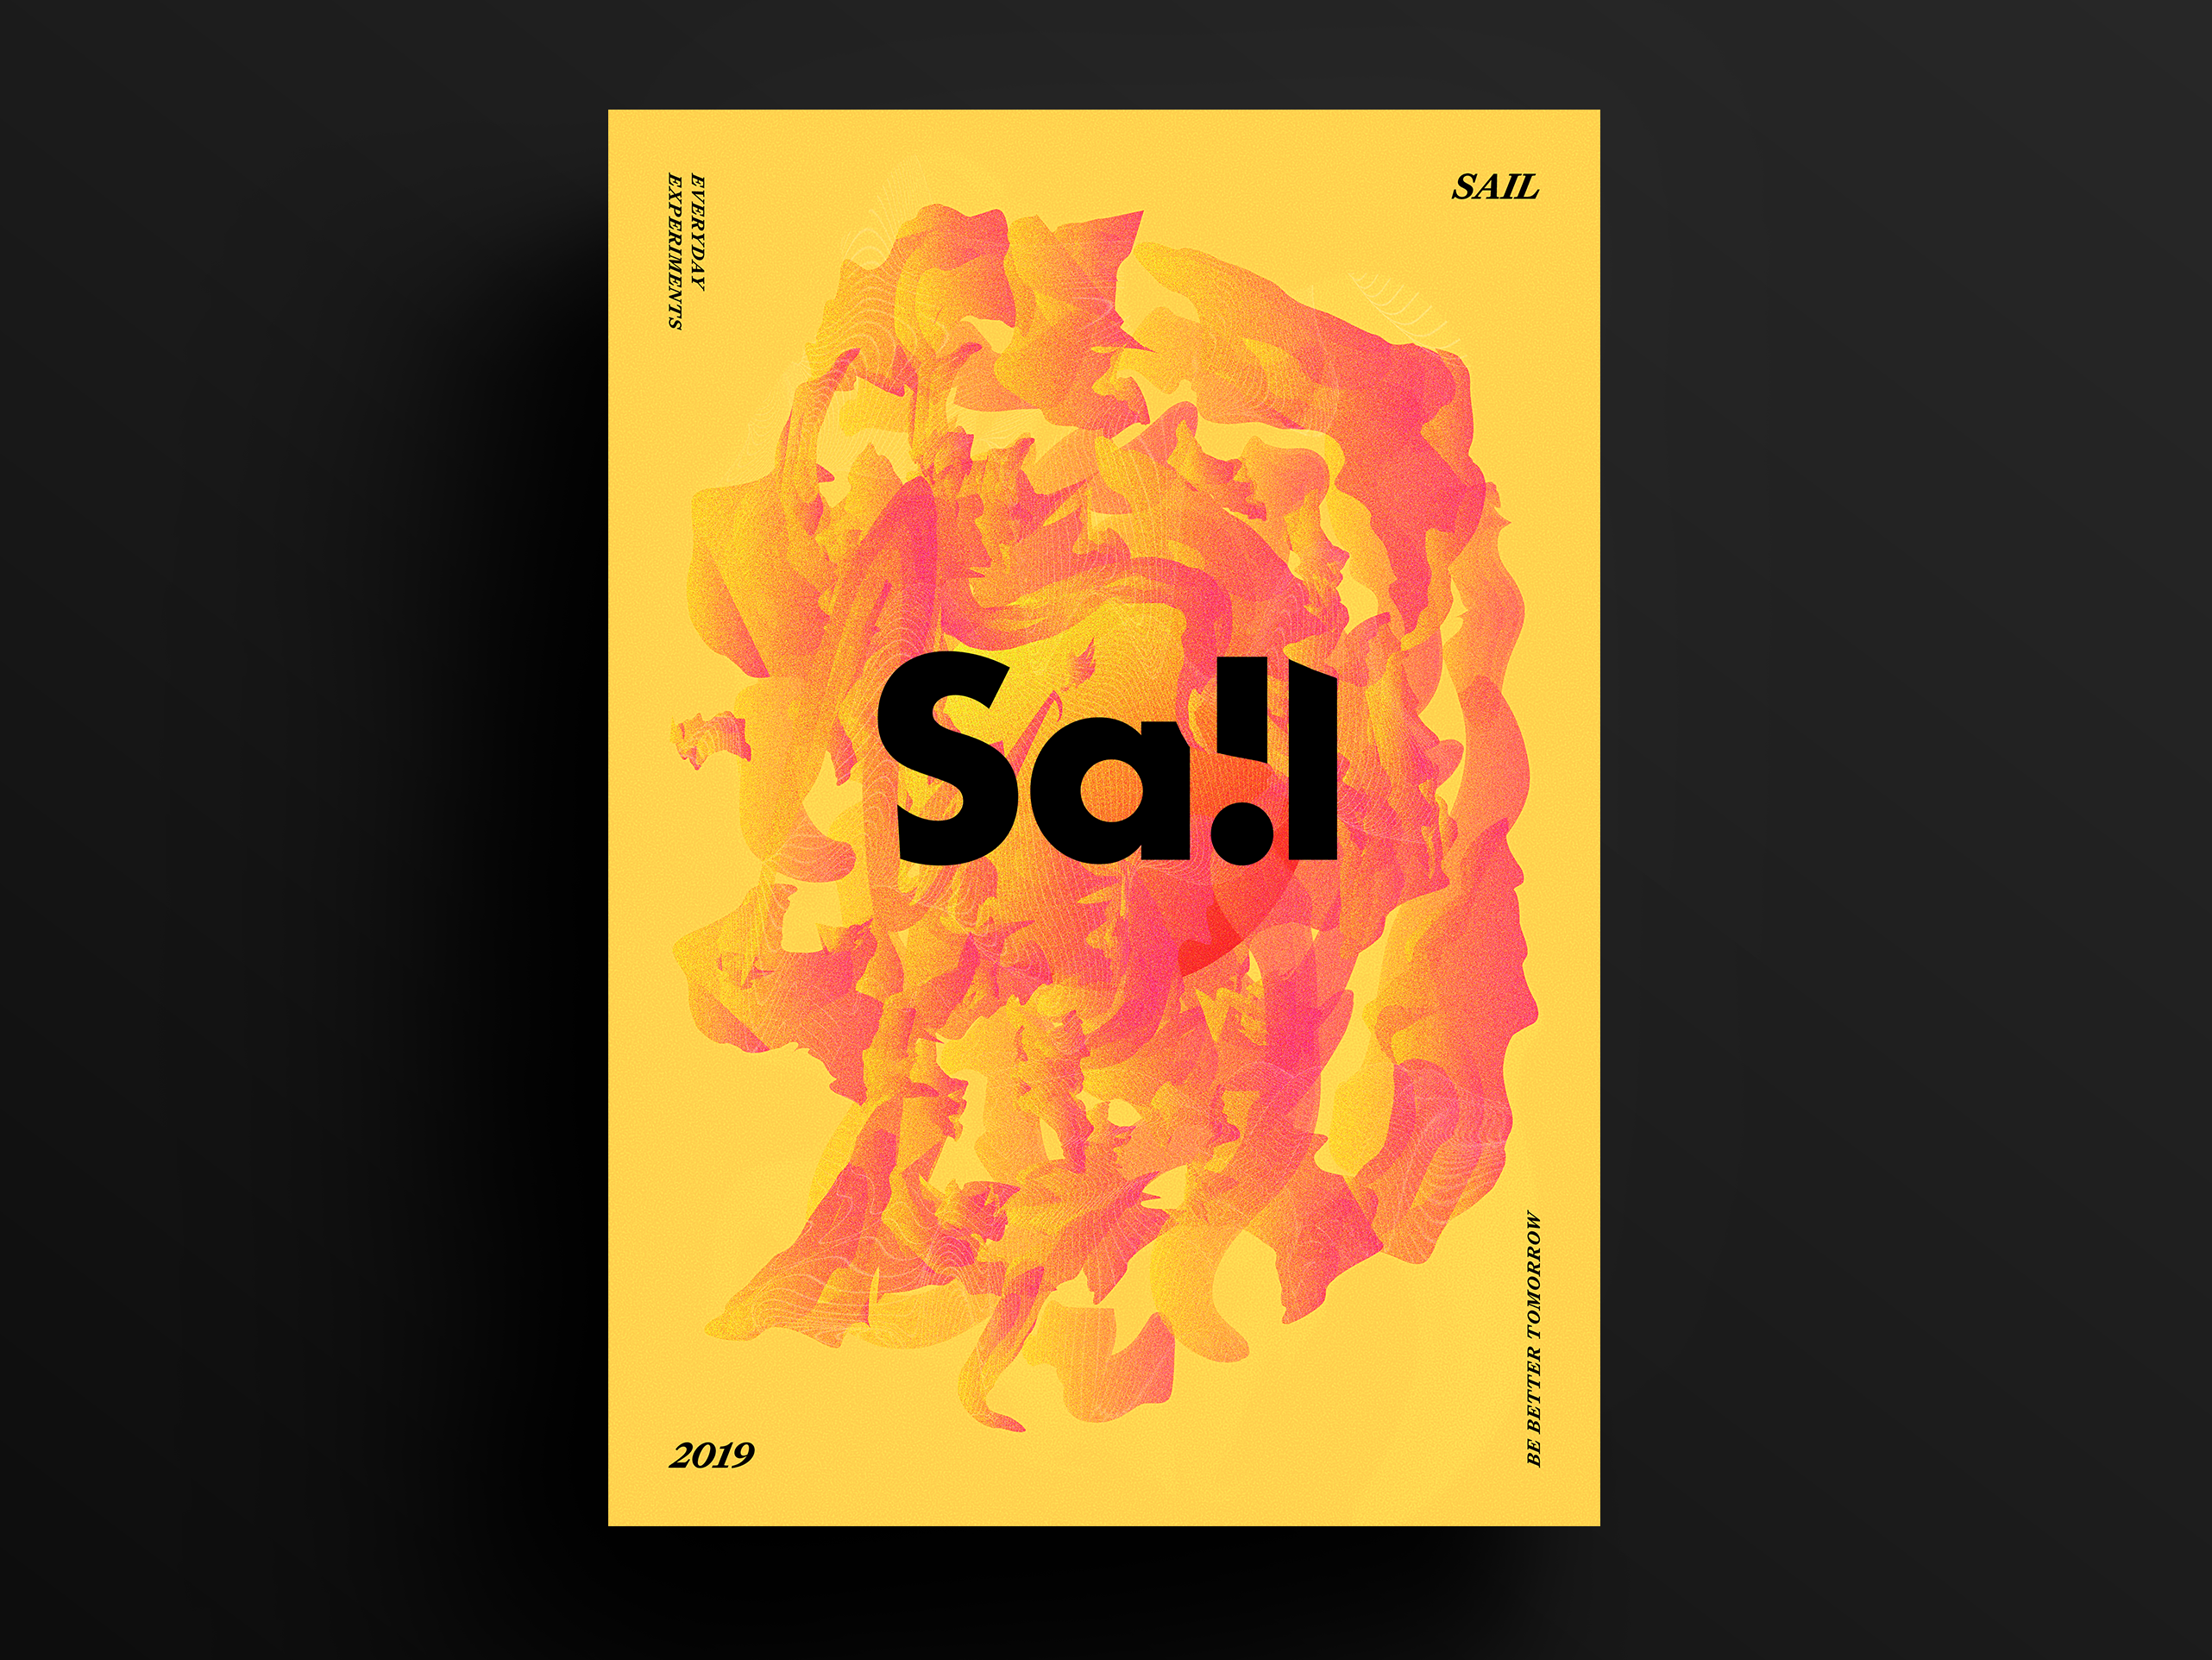 Poster Series Entry 04